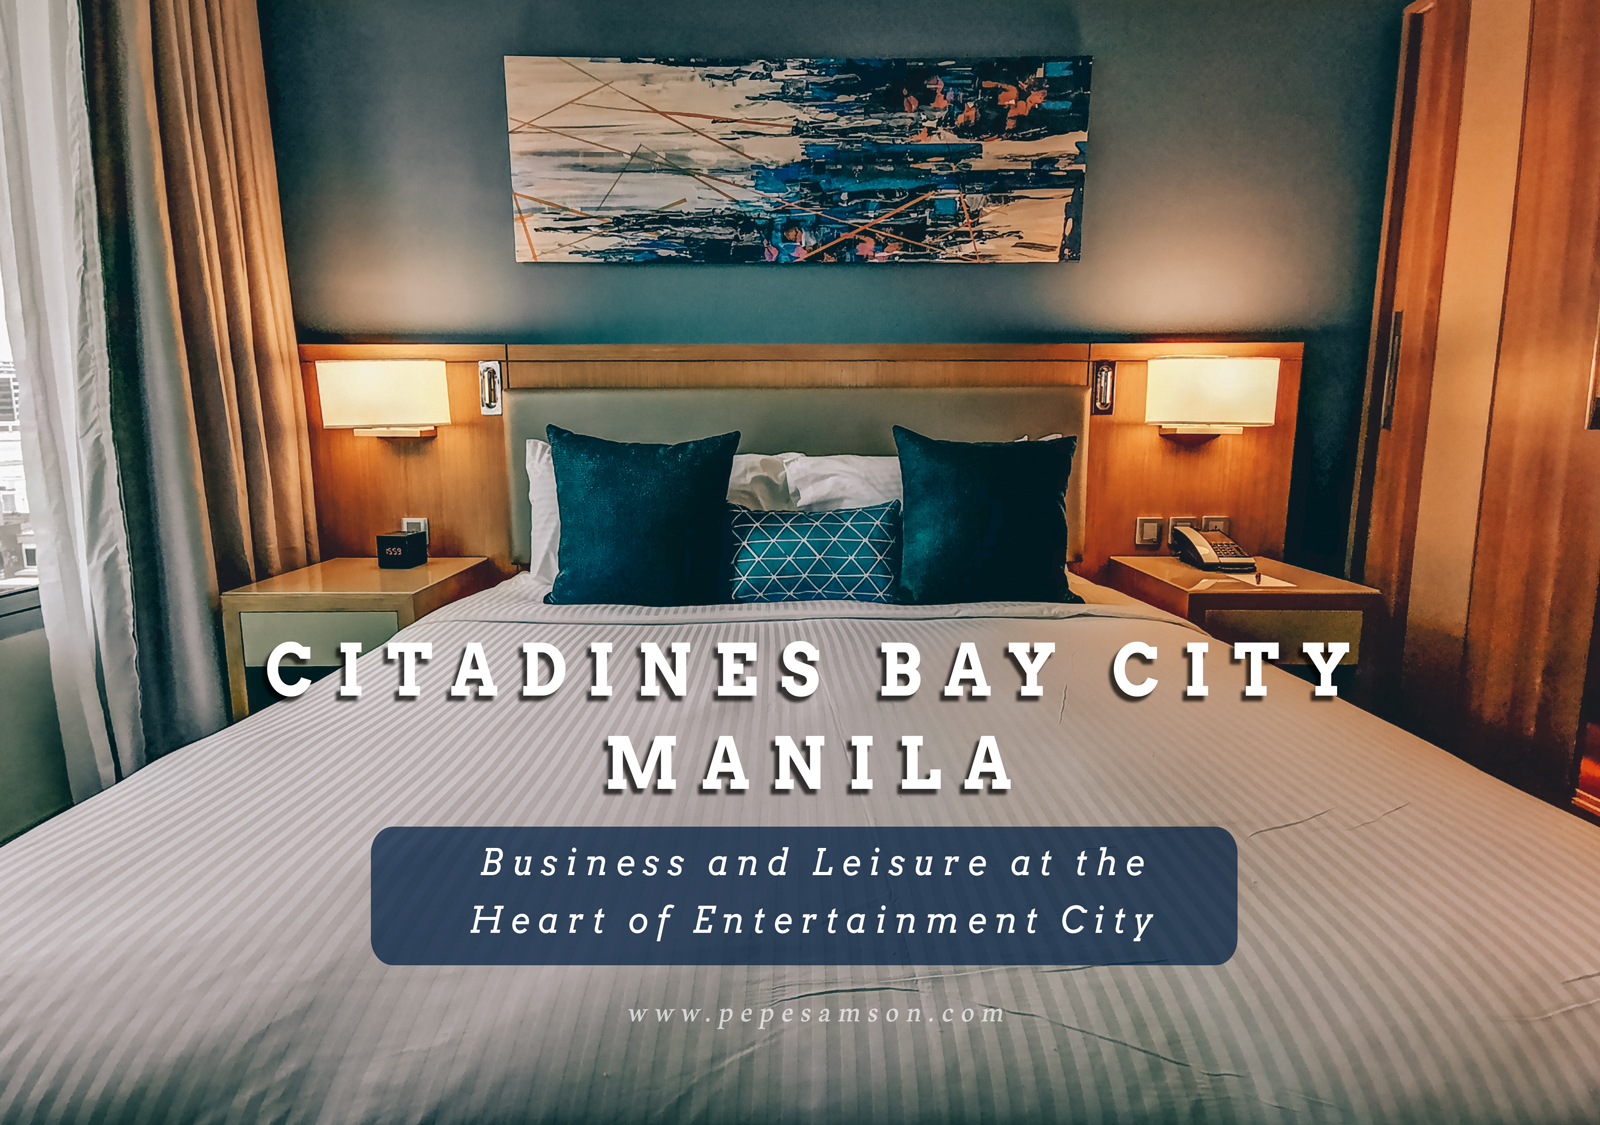 Citadines Bay City Manila: Business and Leisure at the Heart of Entertainment City